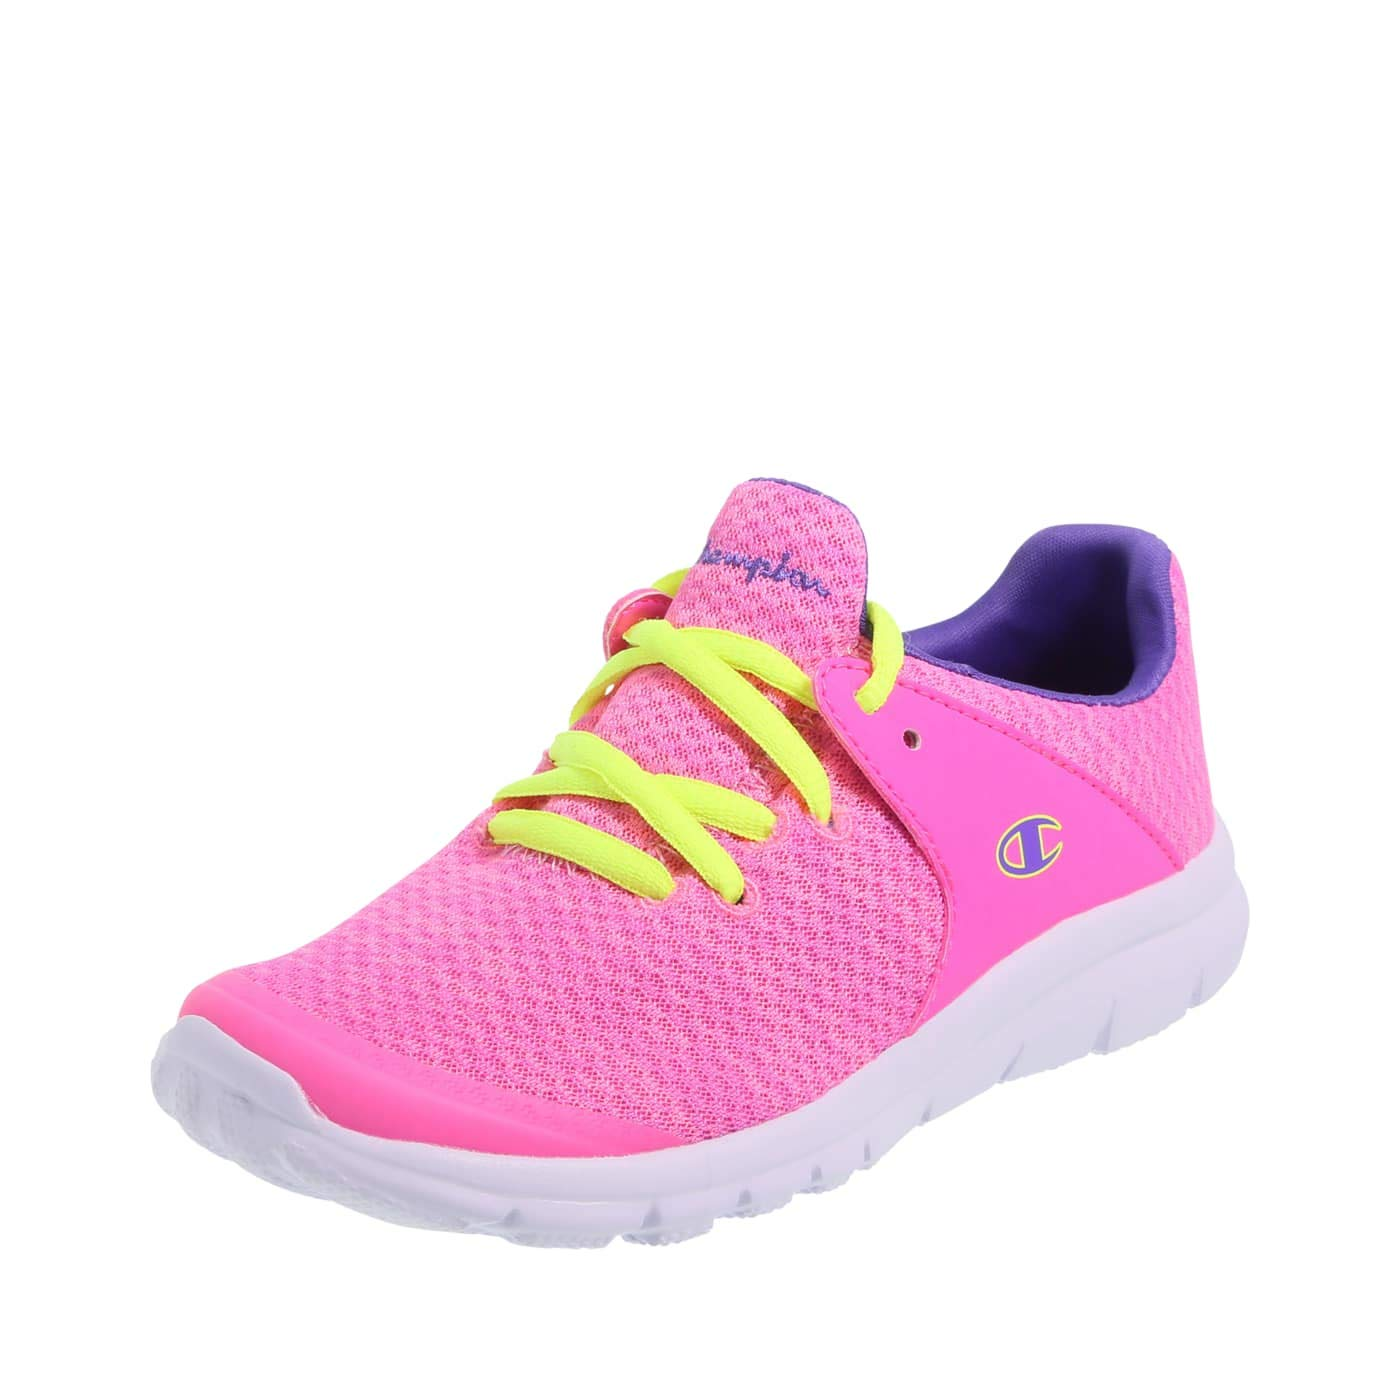 401103b068d86 Best Rated in Girls  Fitness   Cross-Training Shoes   Helpful ...